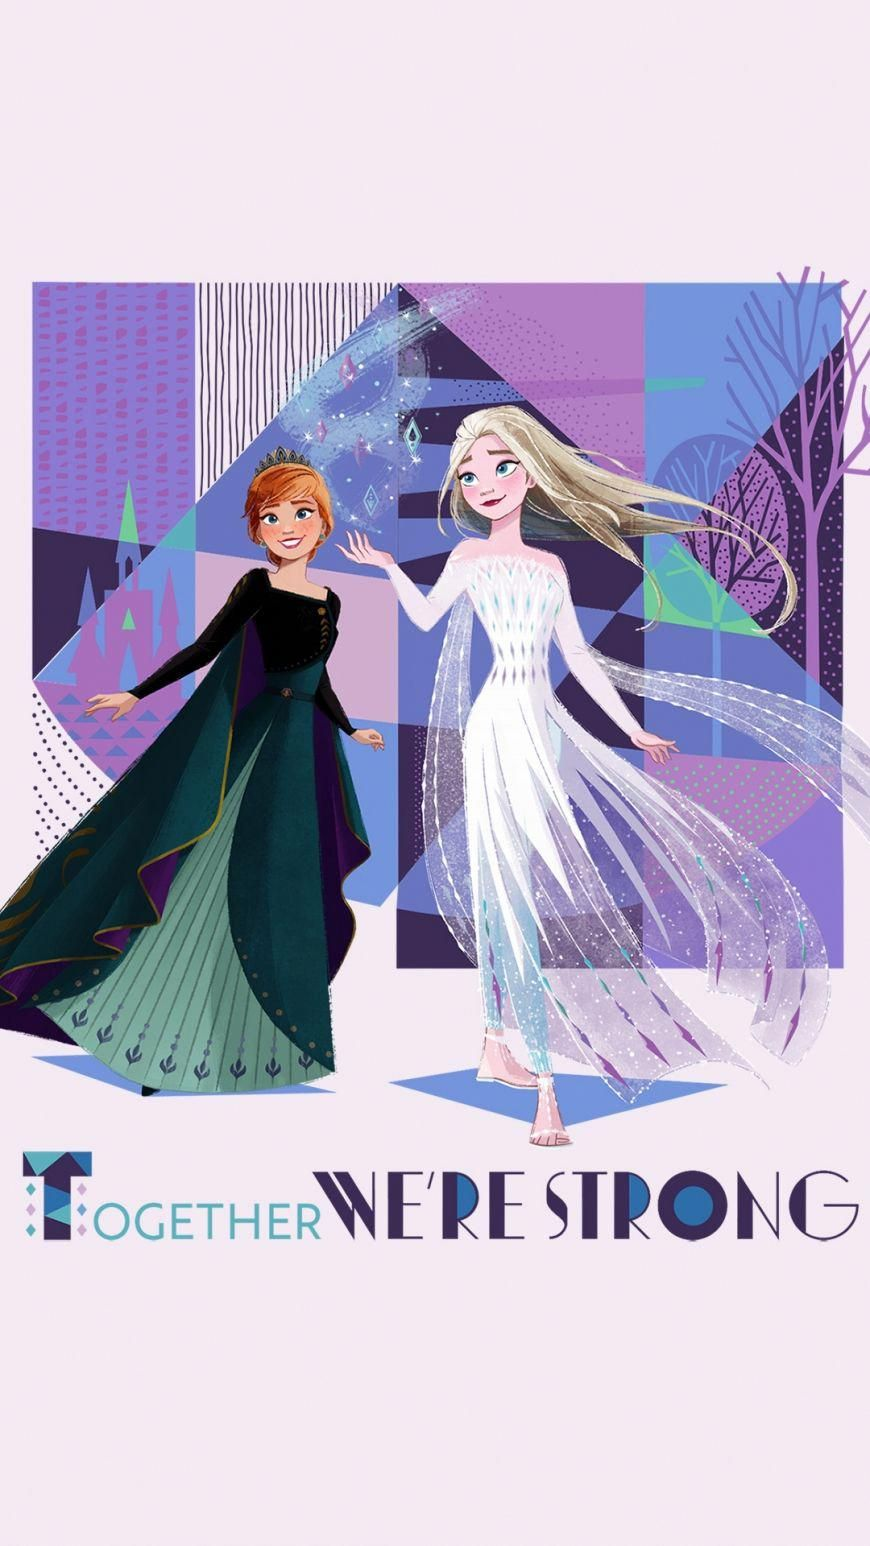 Frozen 2 Hd Background Mobile Elsa White Dress And Anna Queen Biotinforhairgrowth In 2020 Disney Princess Wallpaper Disney Princess Frozen Facial Hair Care